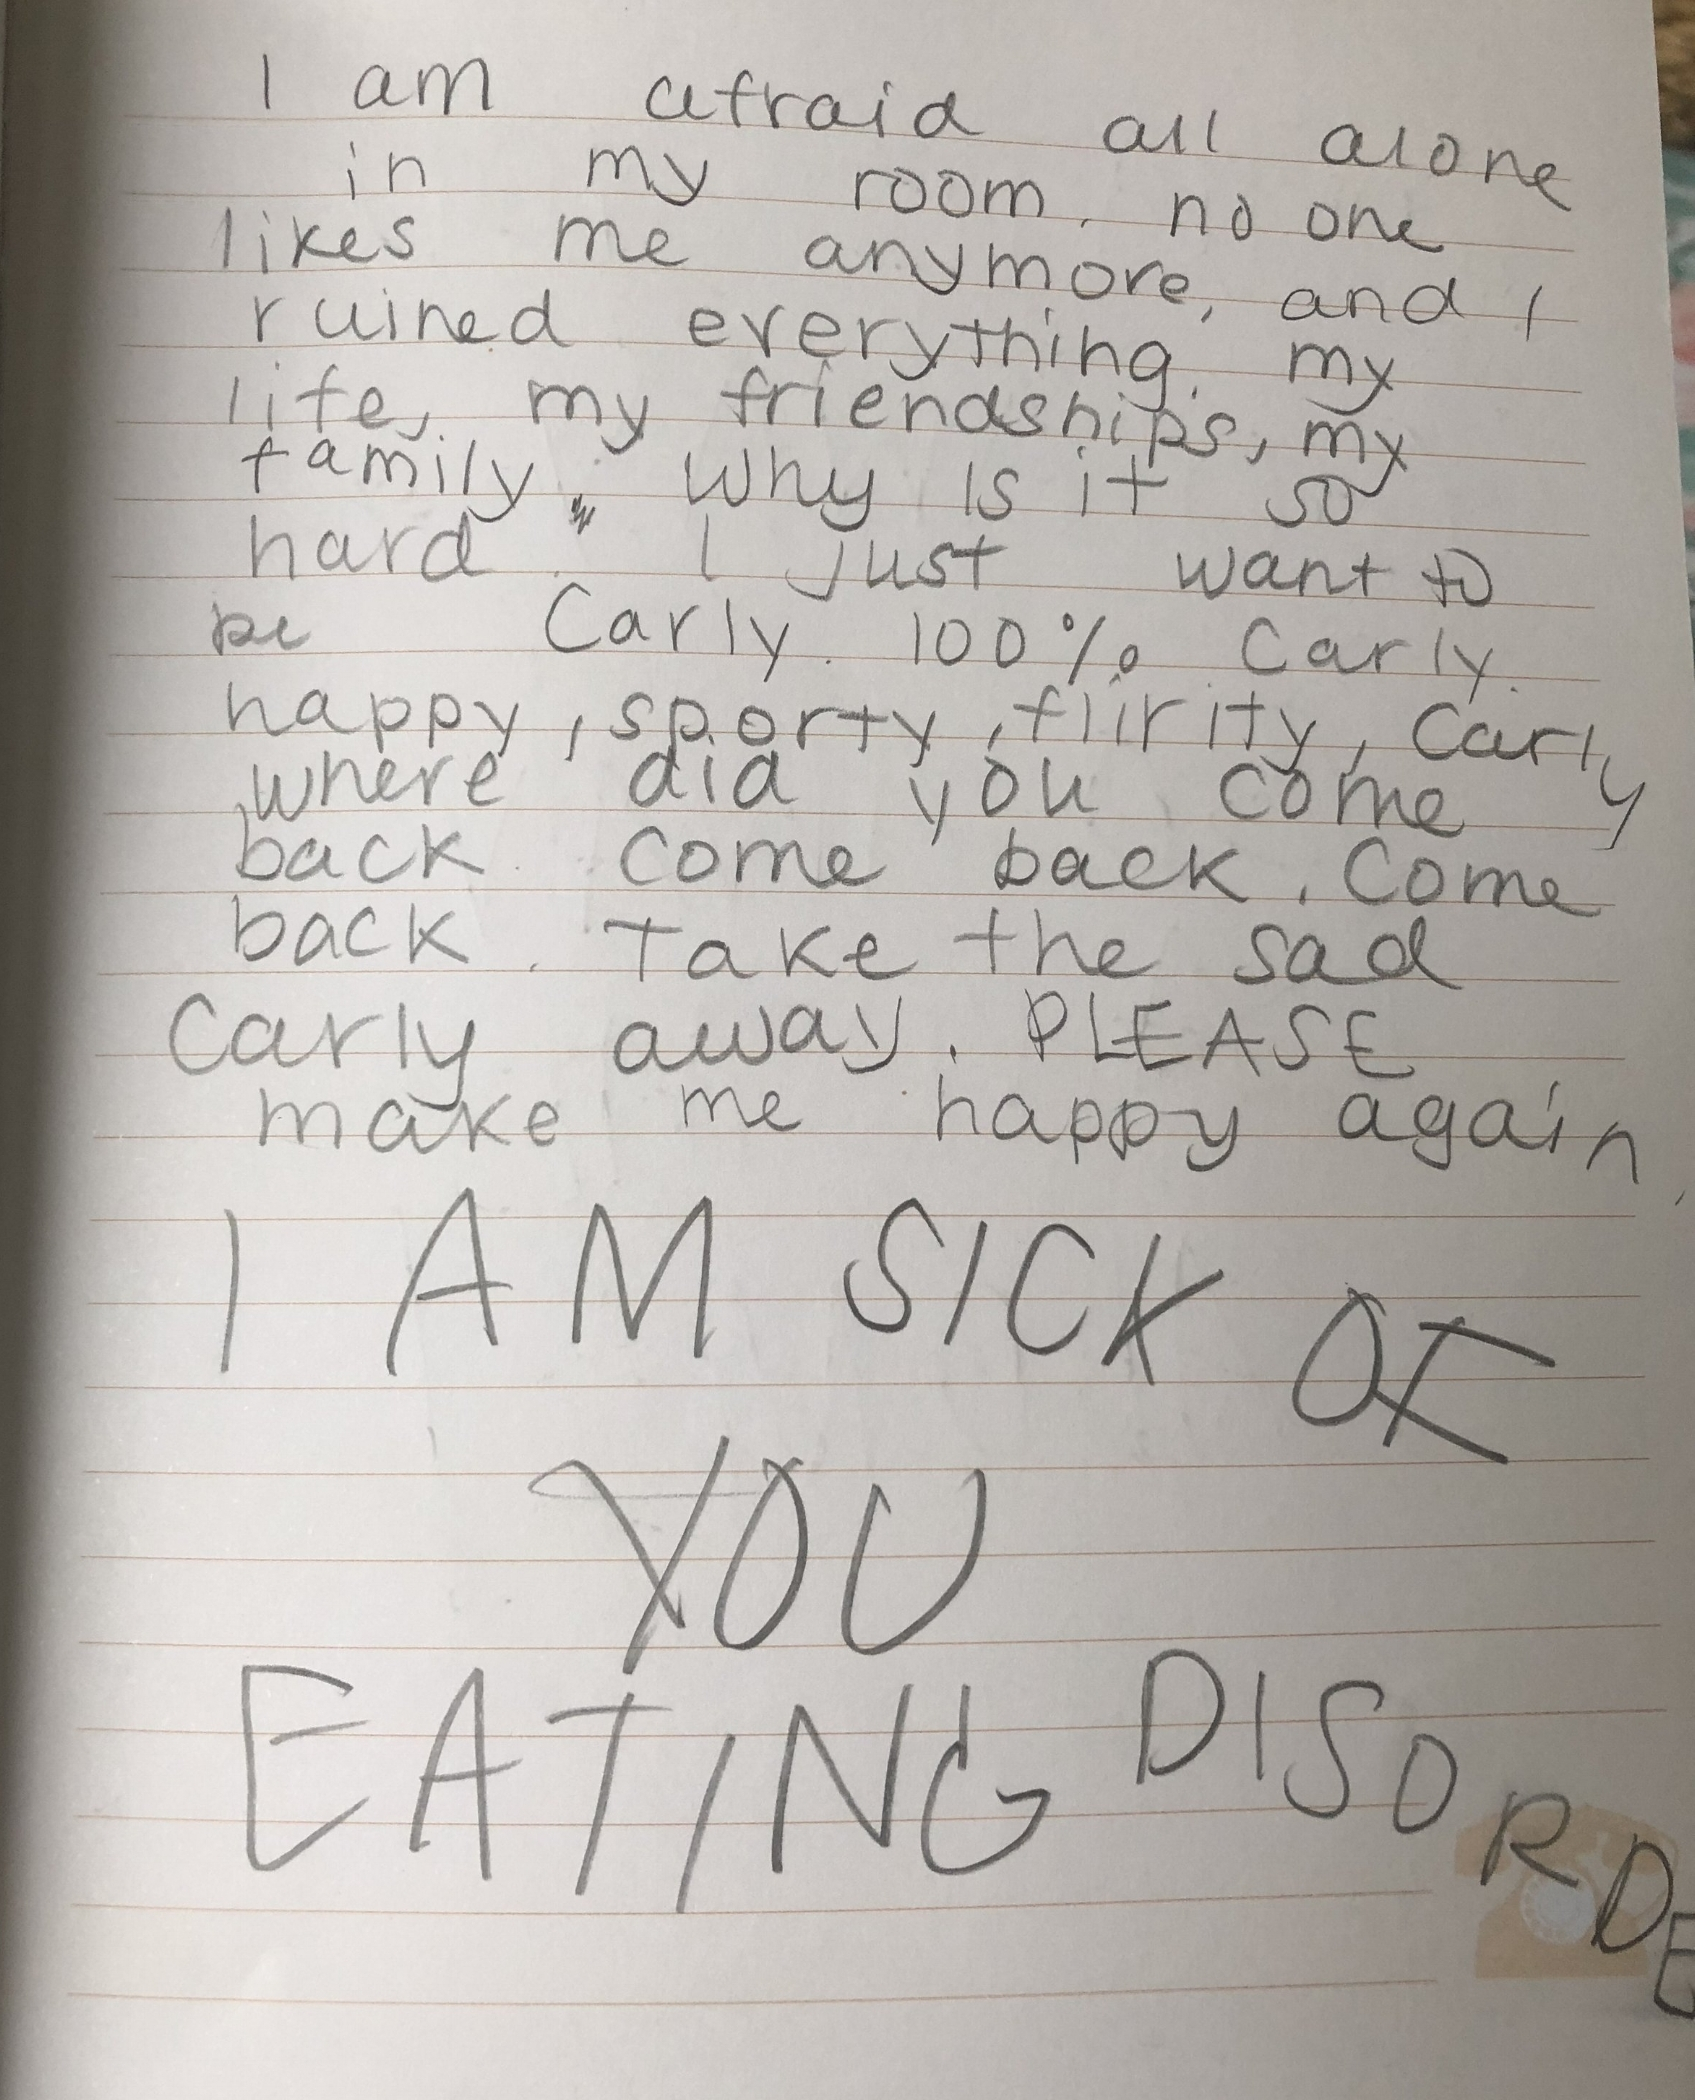 Journal Entry Two